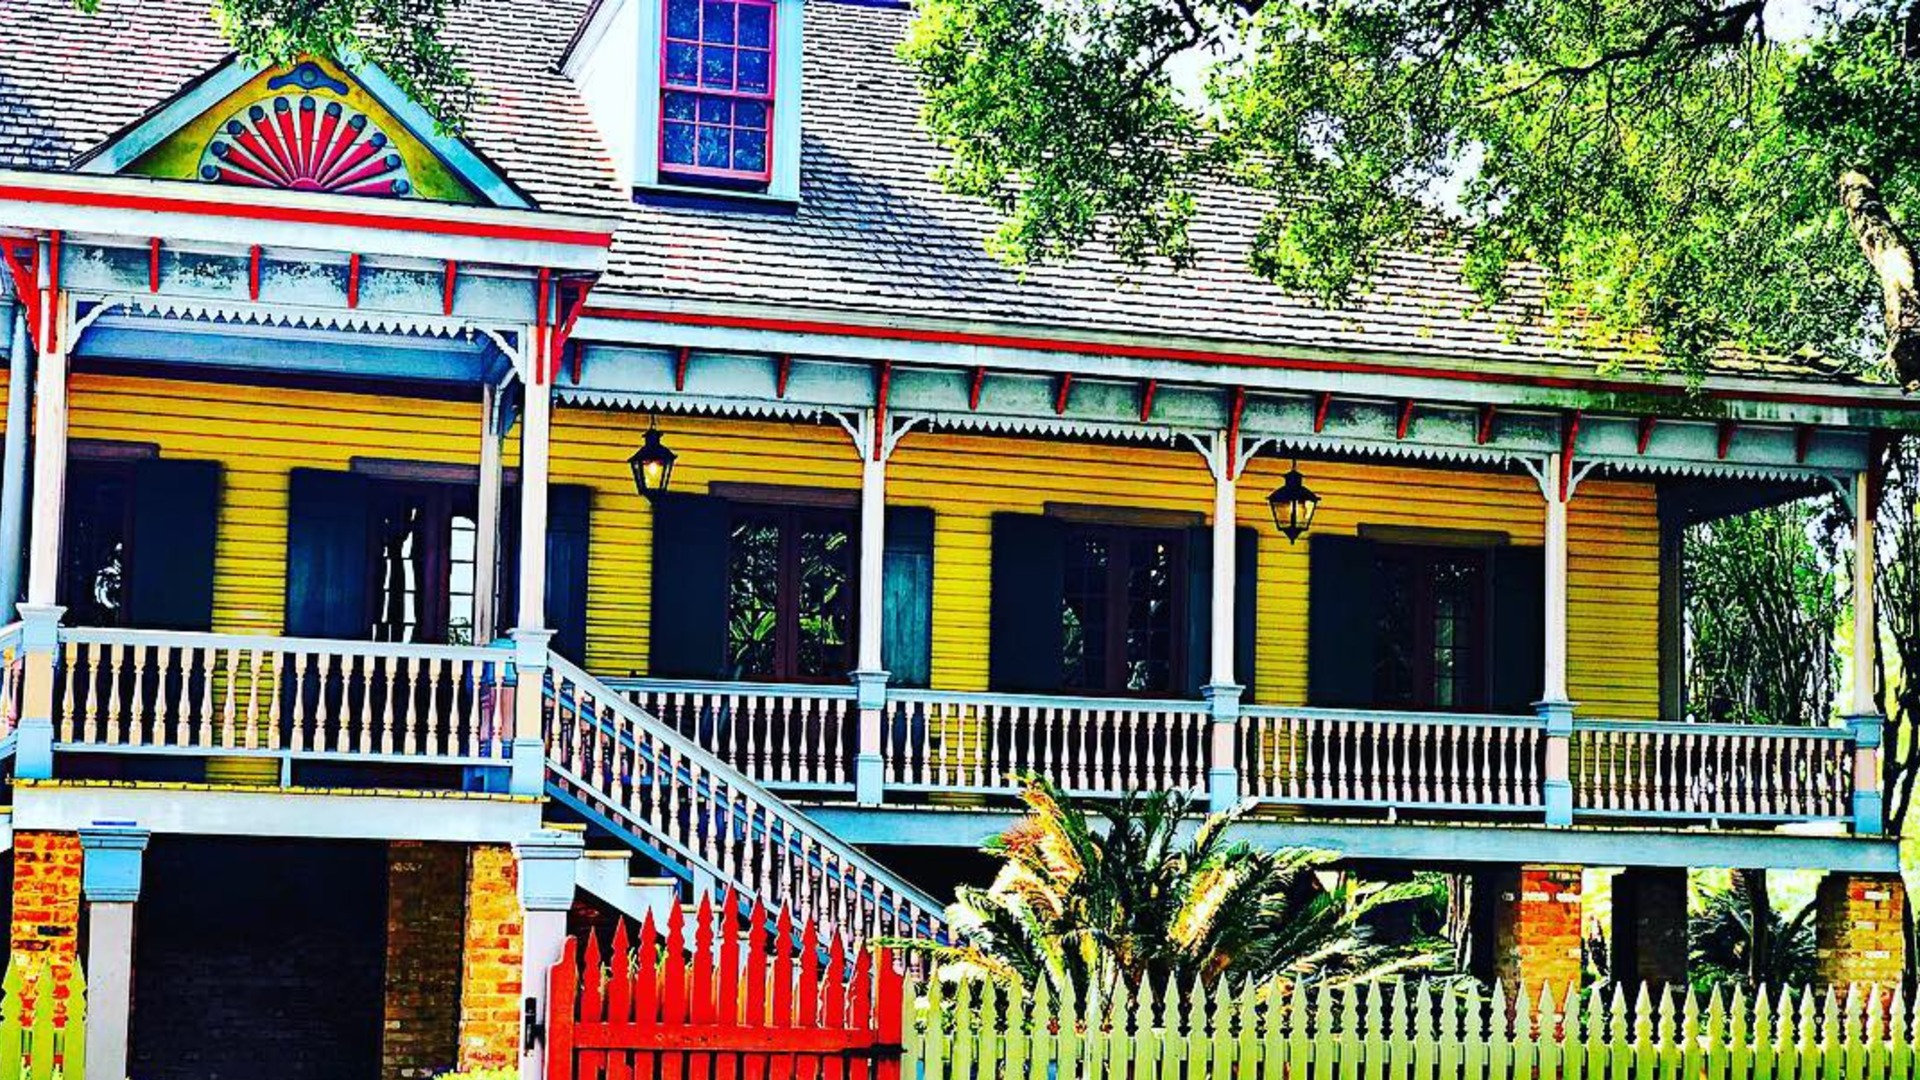 Laura Plantation: A Creole Heritage Site, located in Vacherie, Louisiana.